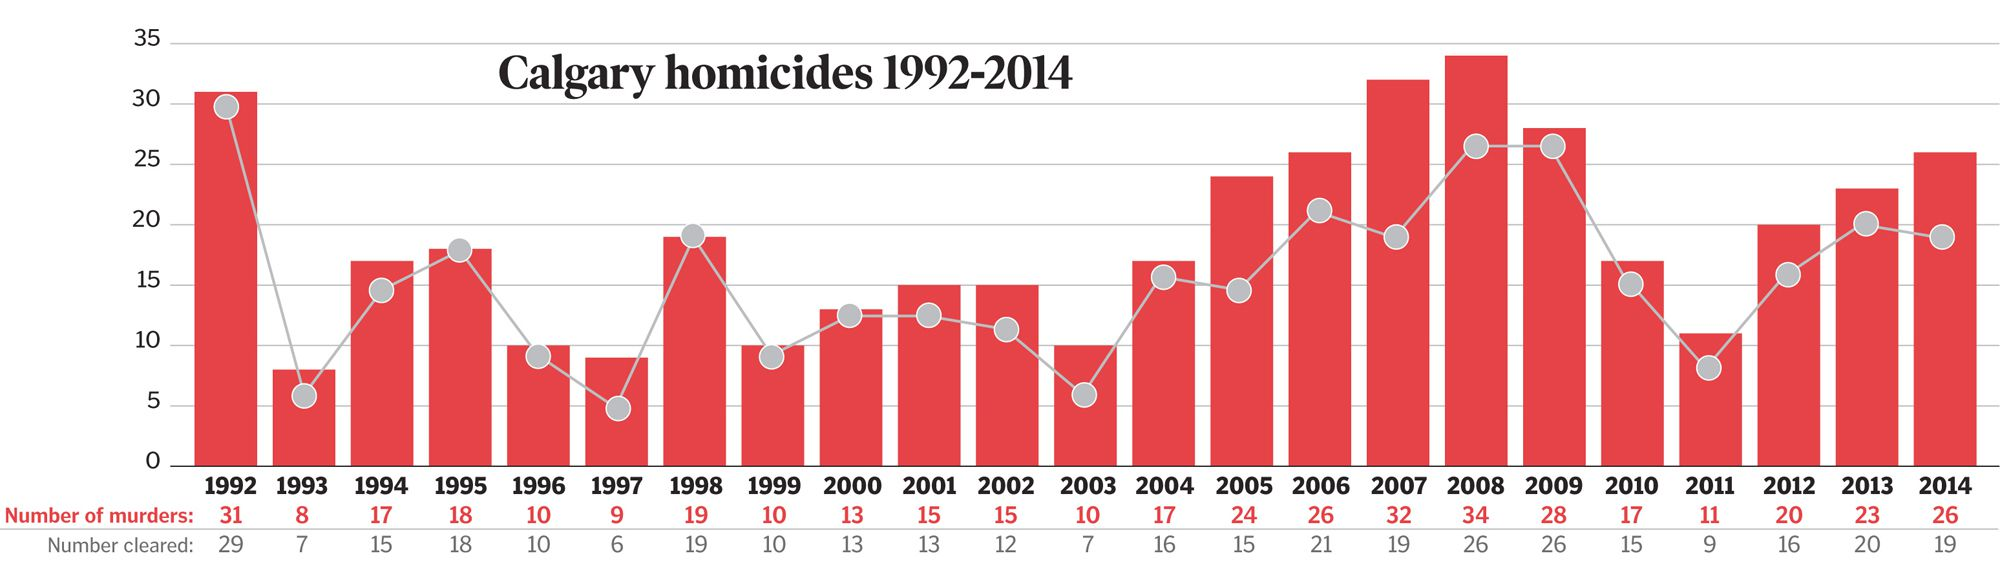 Homicides in Calgary